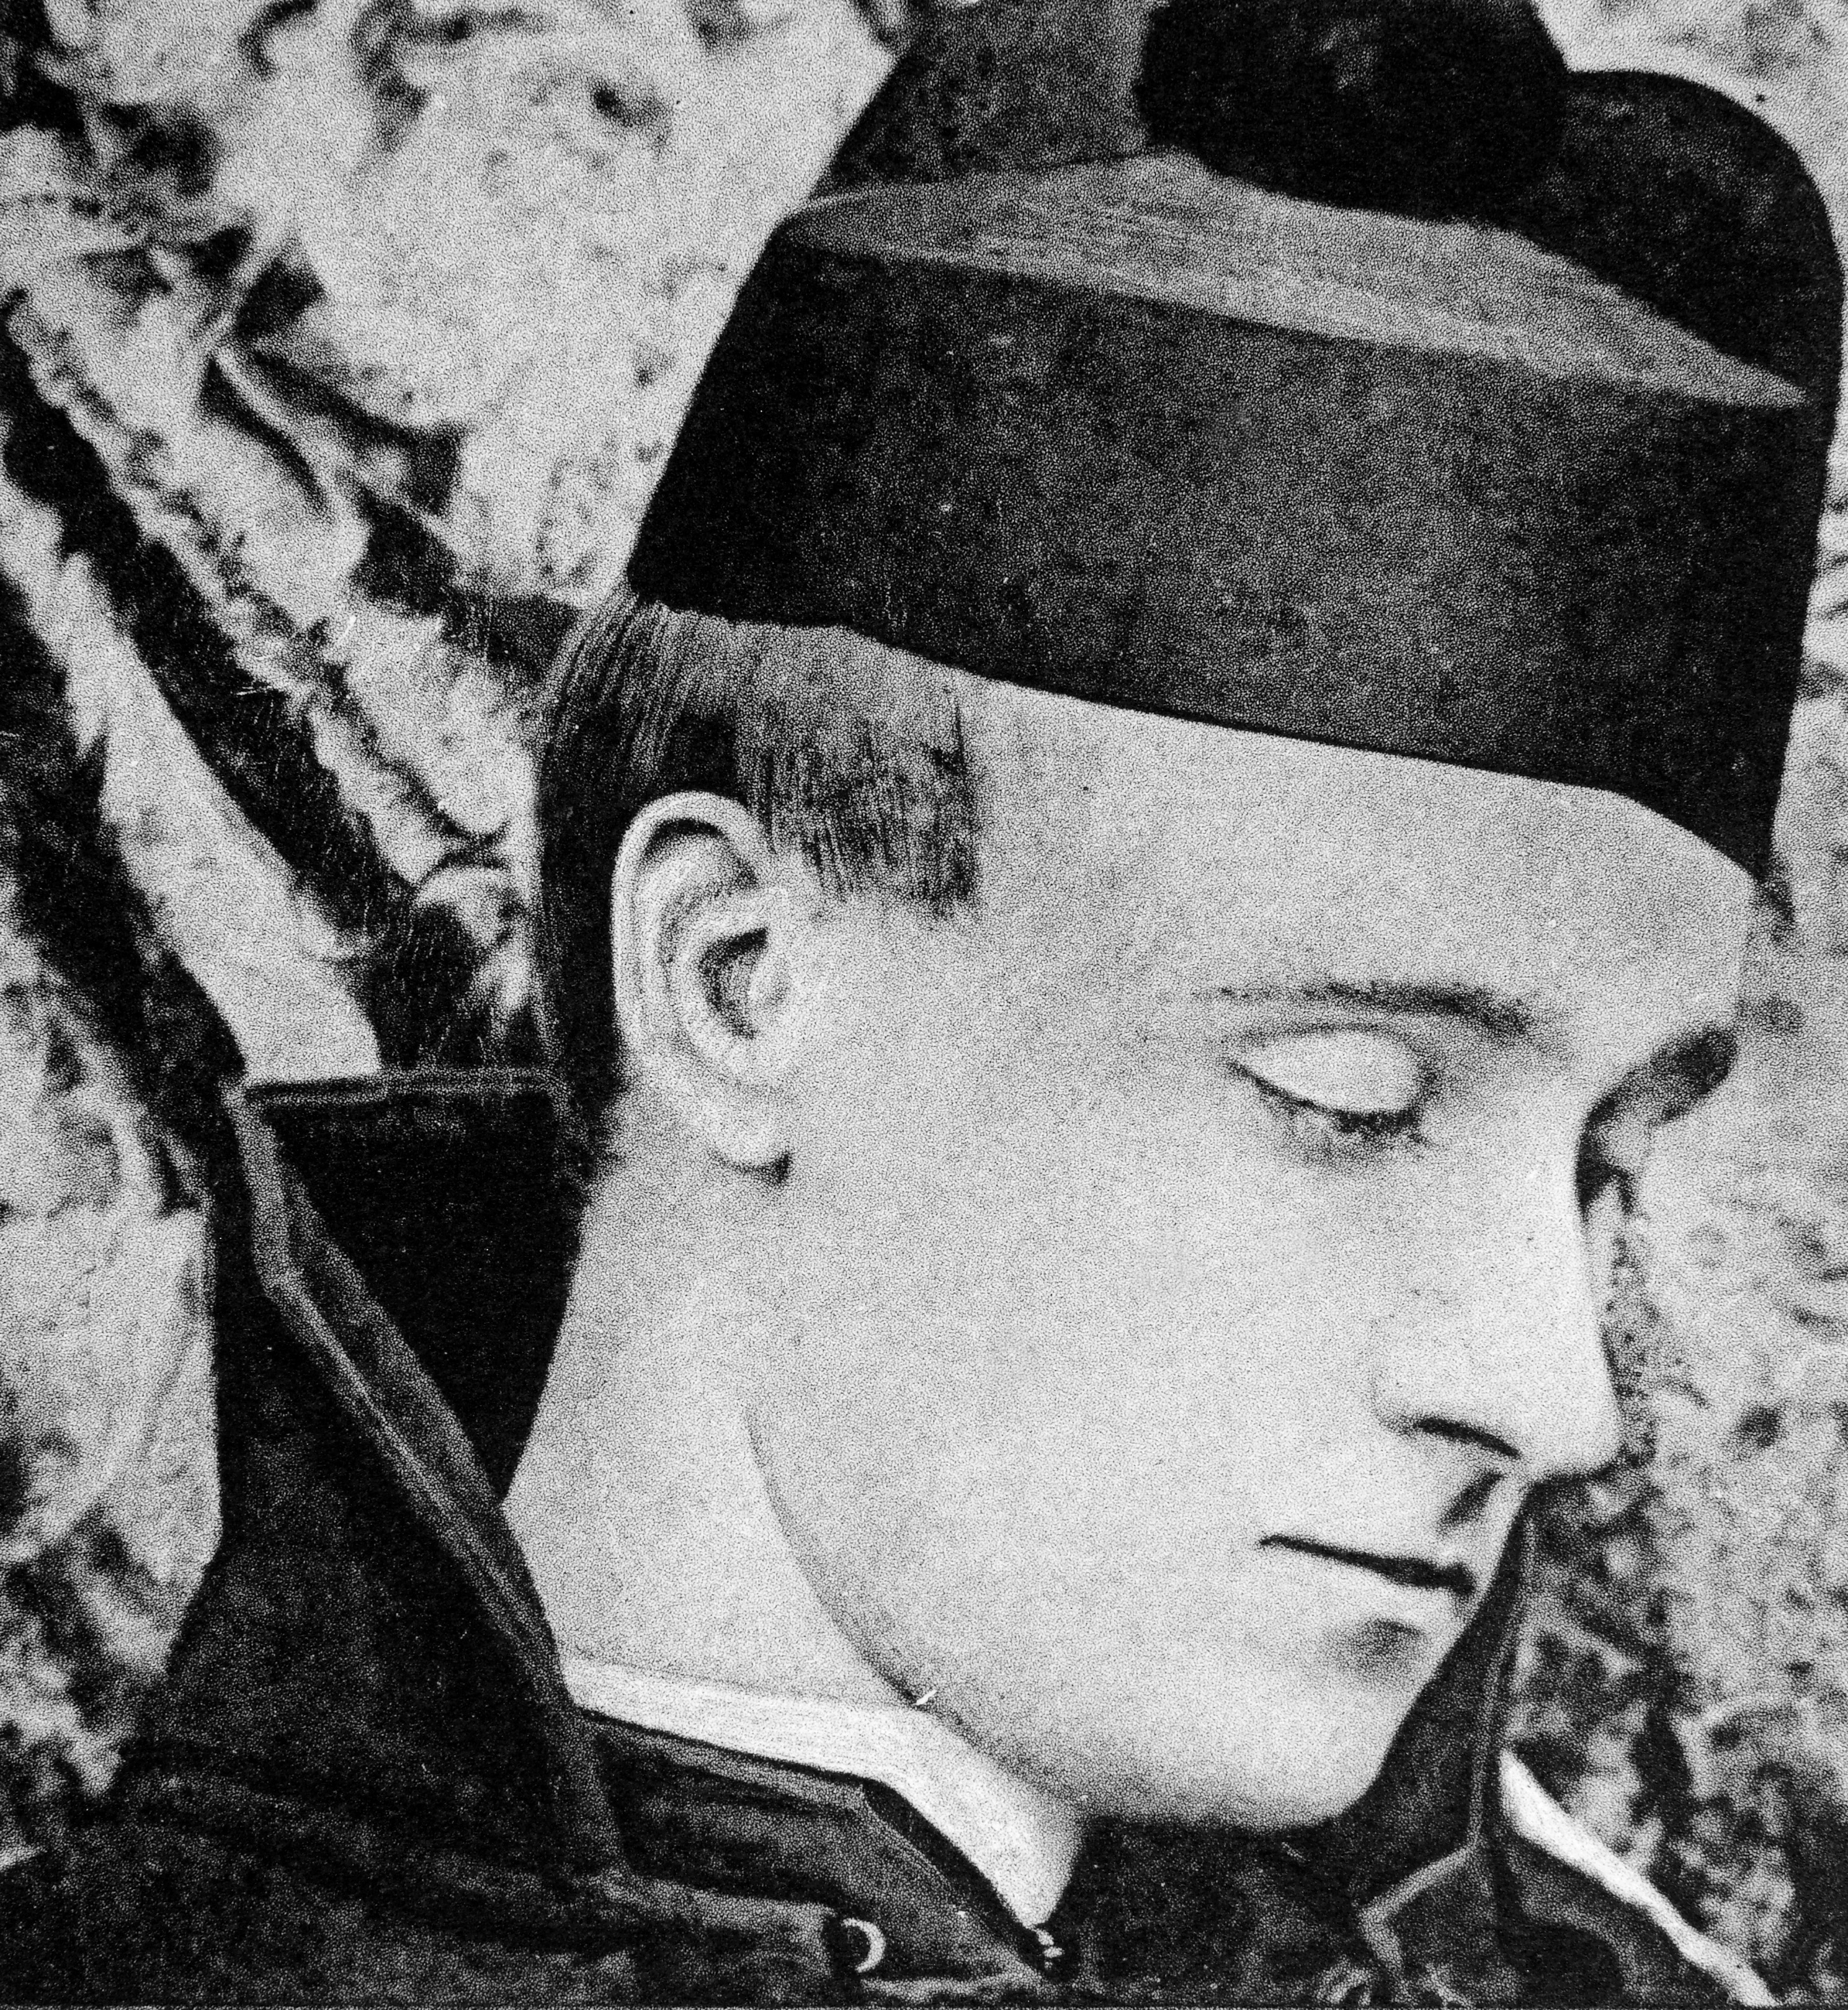 Black-and-white image is a close headshot of Frederick Rolfe, also known as Baron Corvo. He is turned to his left and his gaze is downward and to the left. He is wearing a high-collared jacket and a black hat.